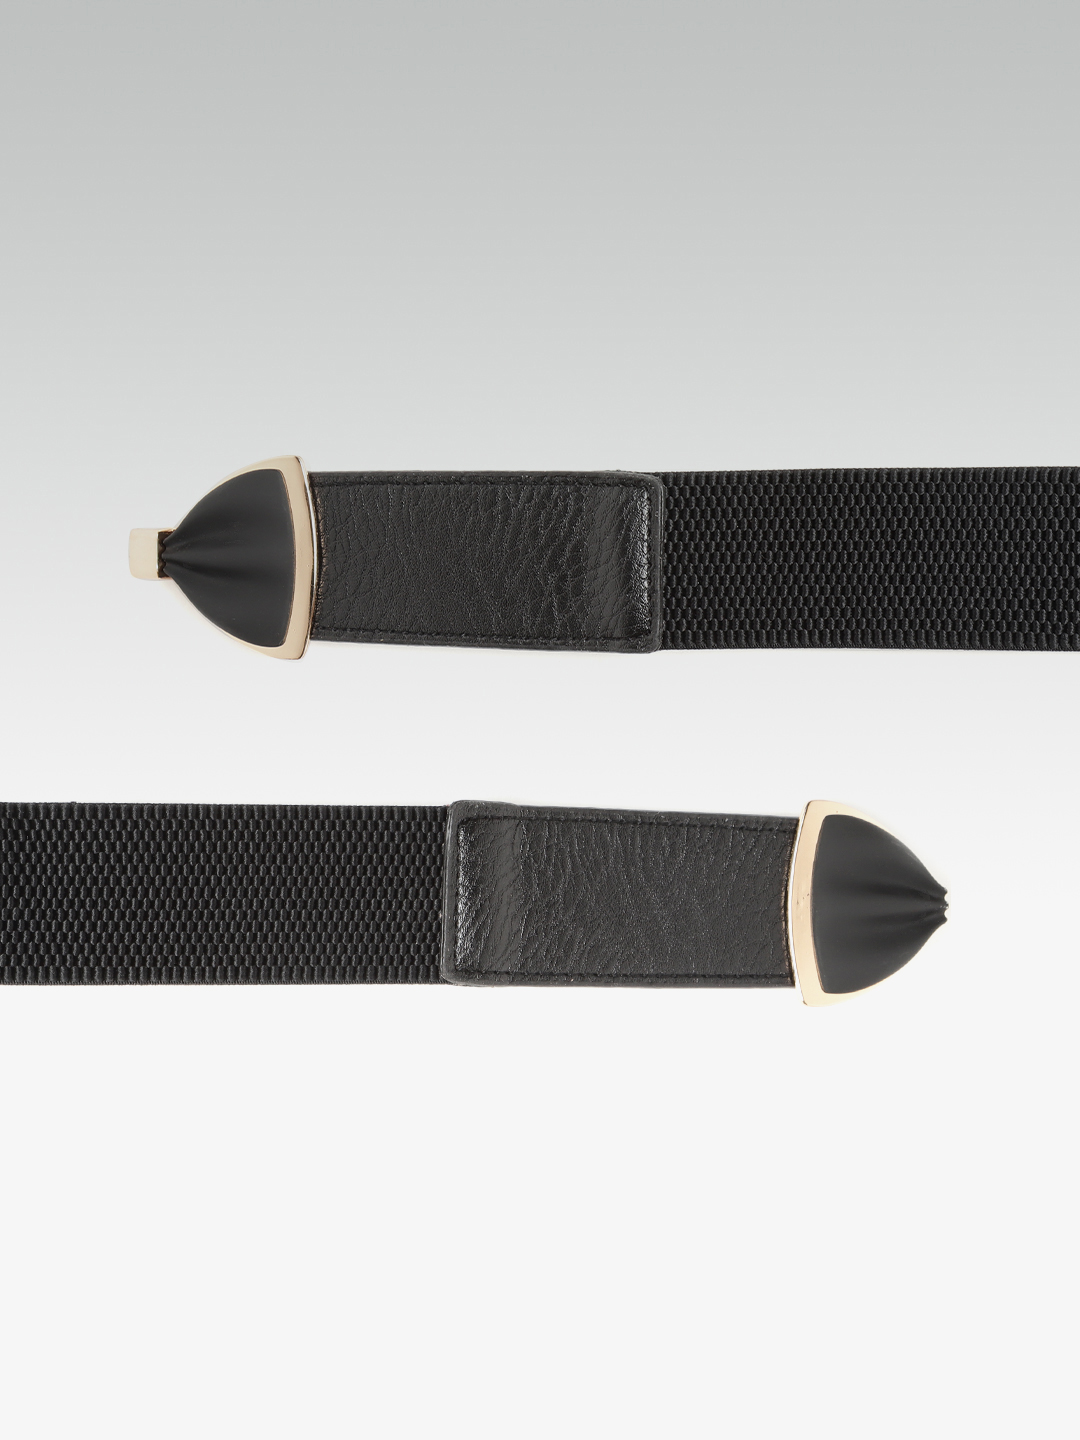 Belts-Golden Glow Bow Black Belt3